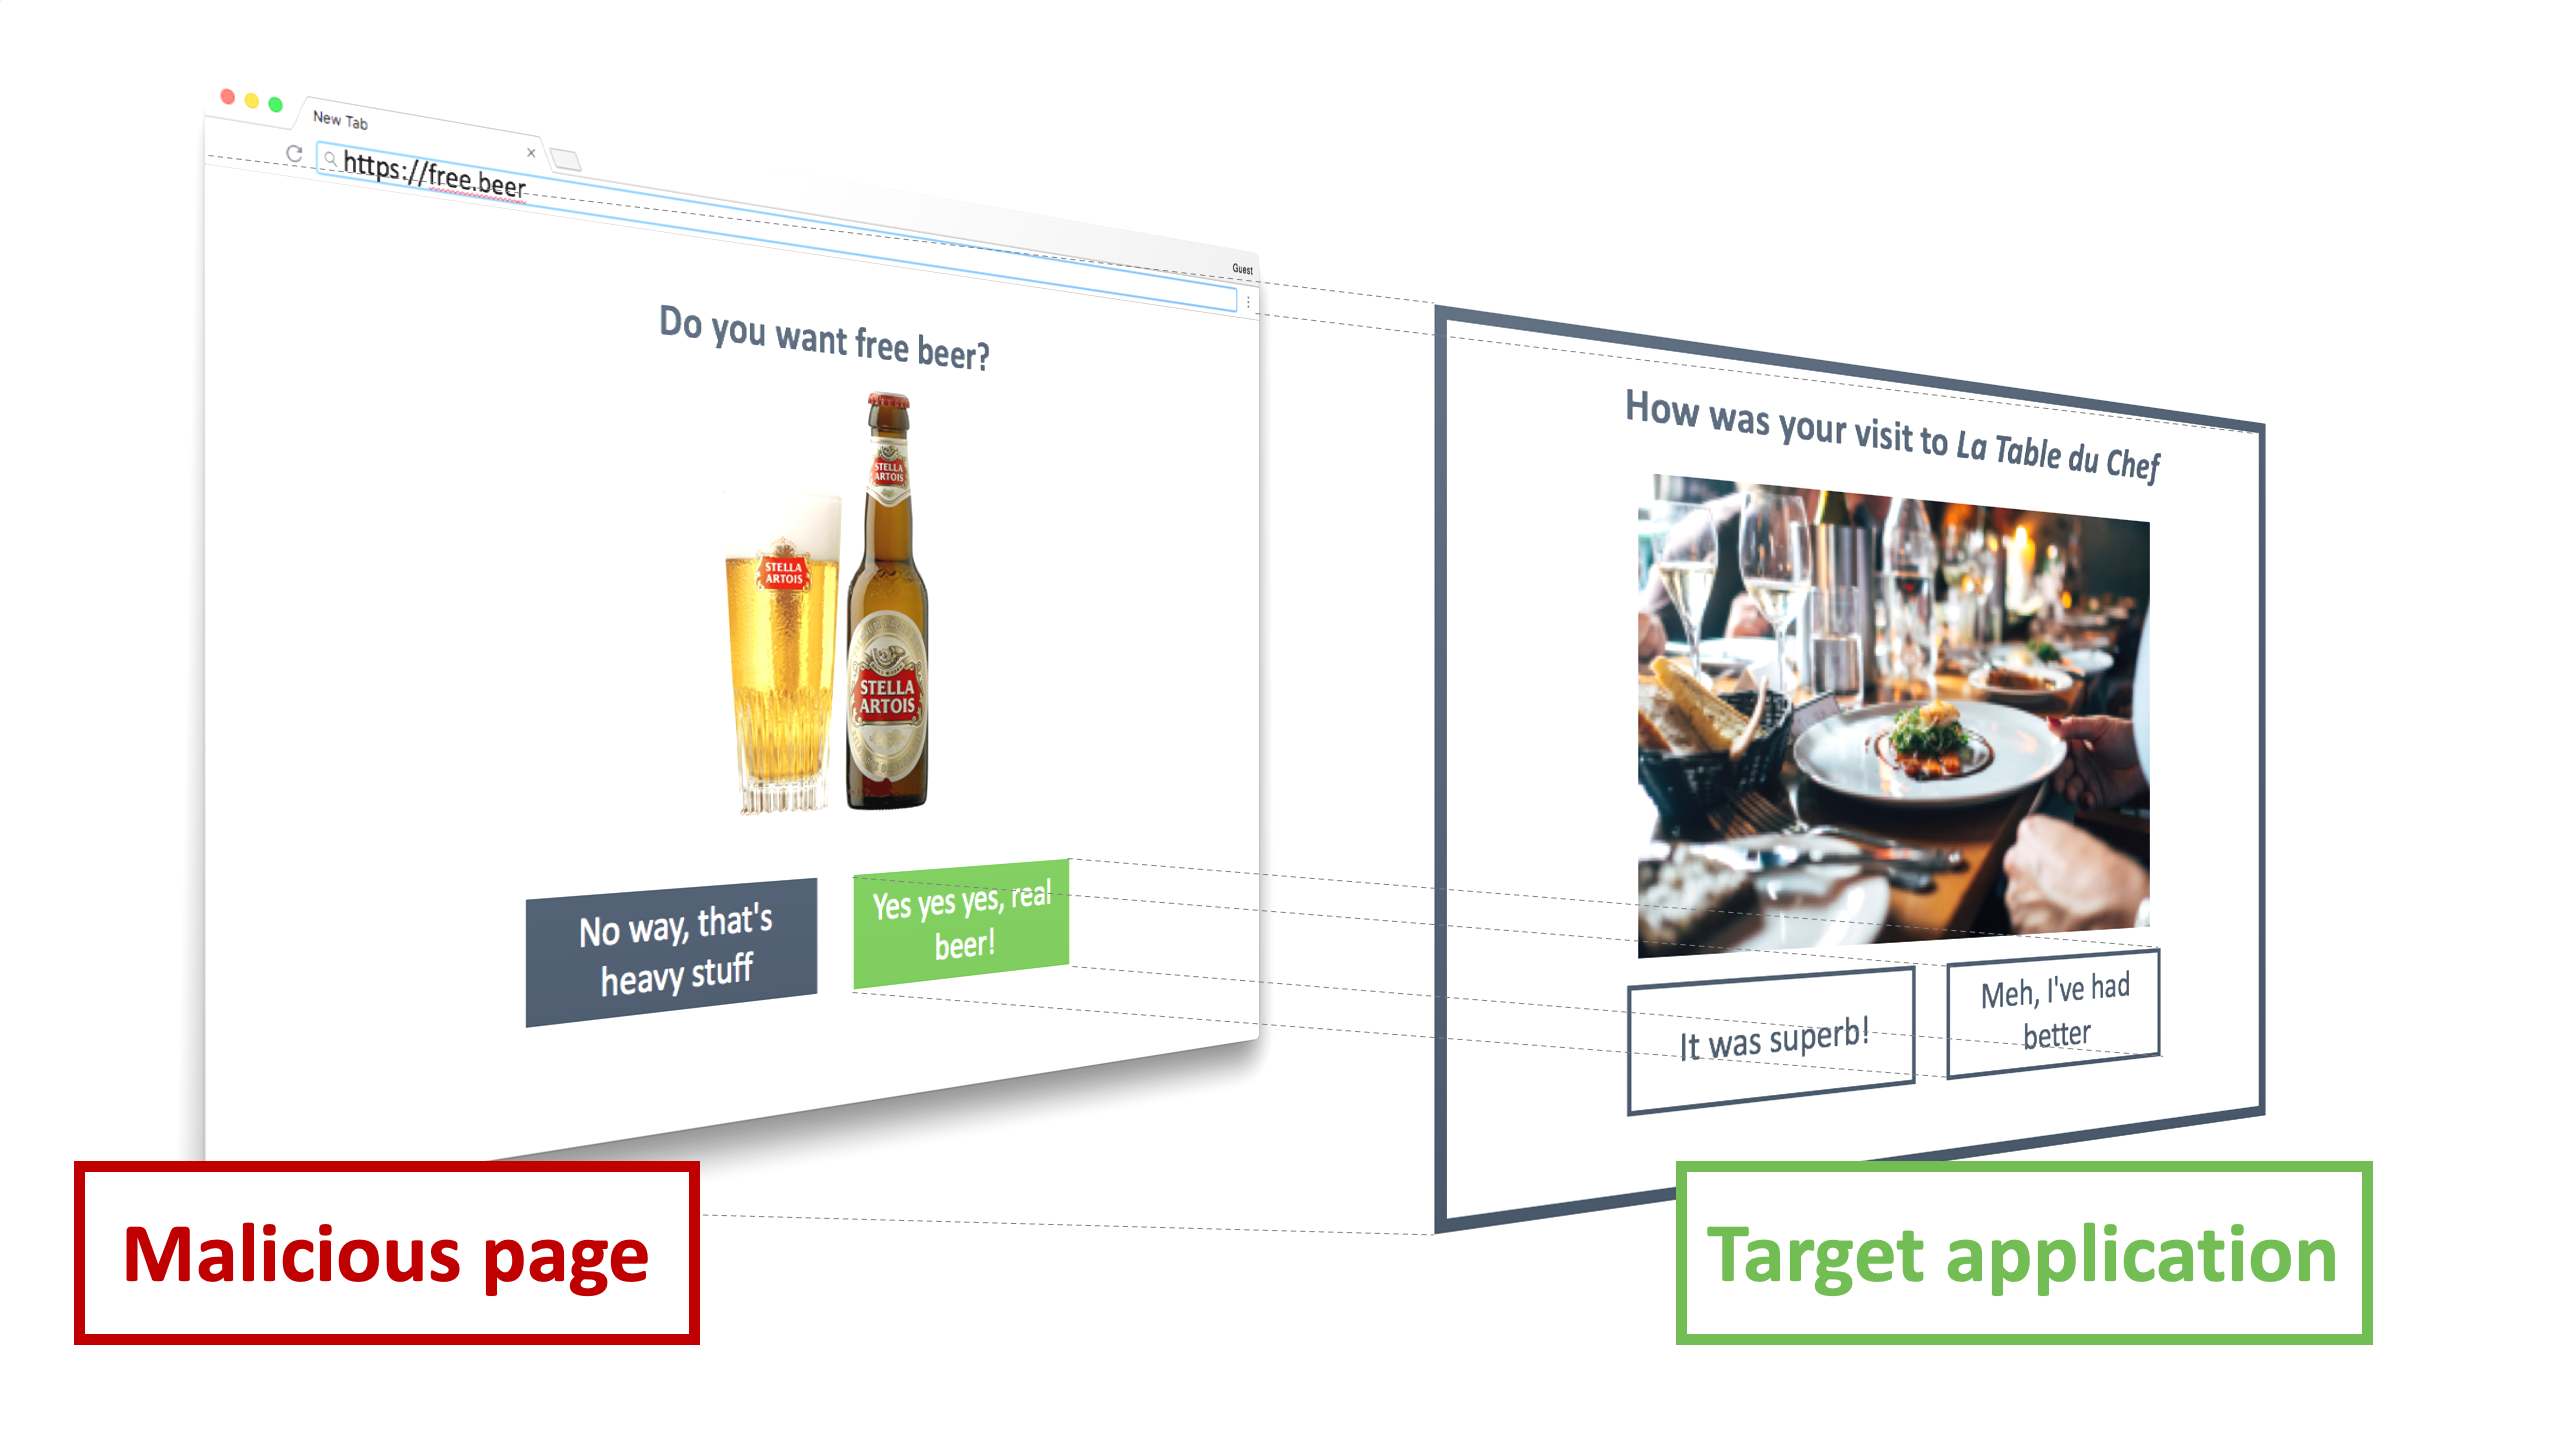 The malicious page offers free beer to the user. What the user does not know is that the attacker overlaid the malicious page with a transparent iframe. Inside the iframe, the target application is loaded, with an action nicely lined up with the button on the malicious page. When the user clicks, the actual click will go the target application in the frame, triggering unwanted actions.